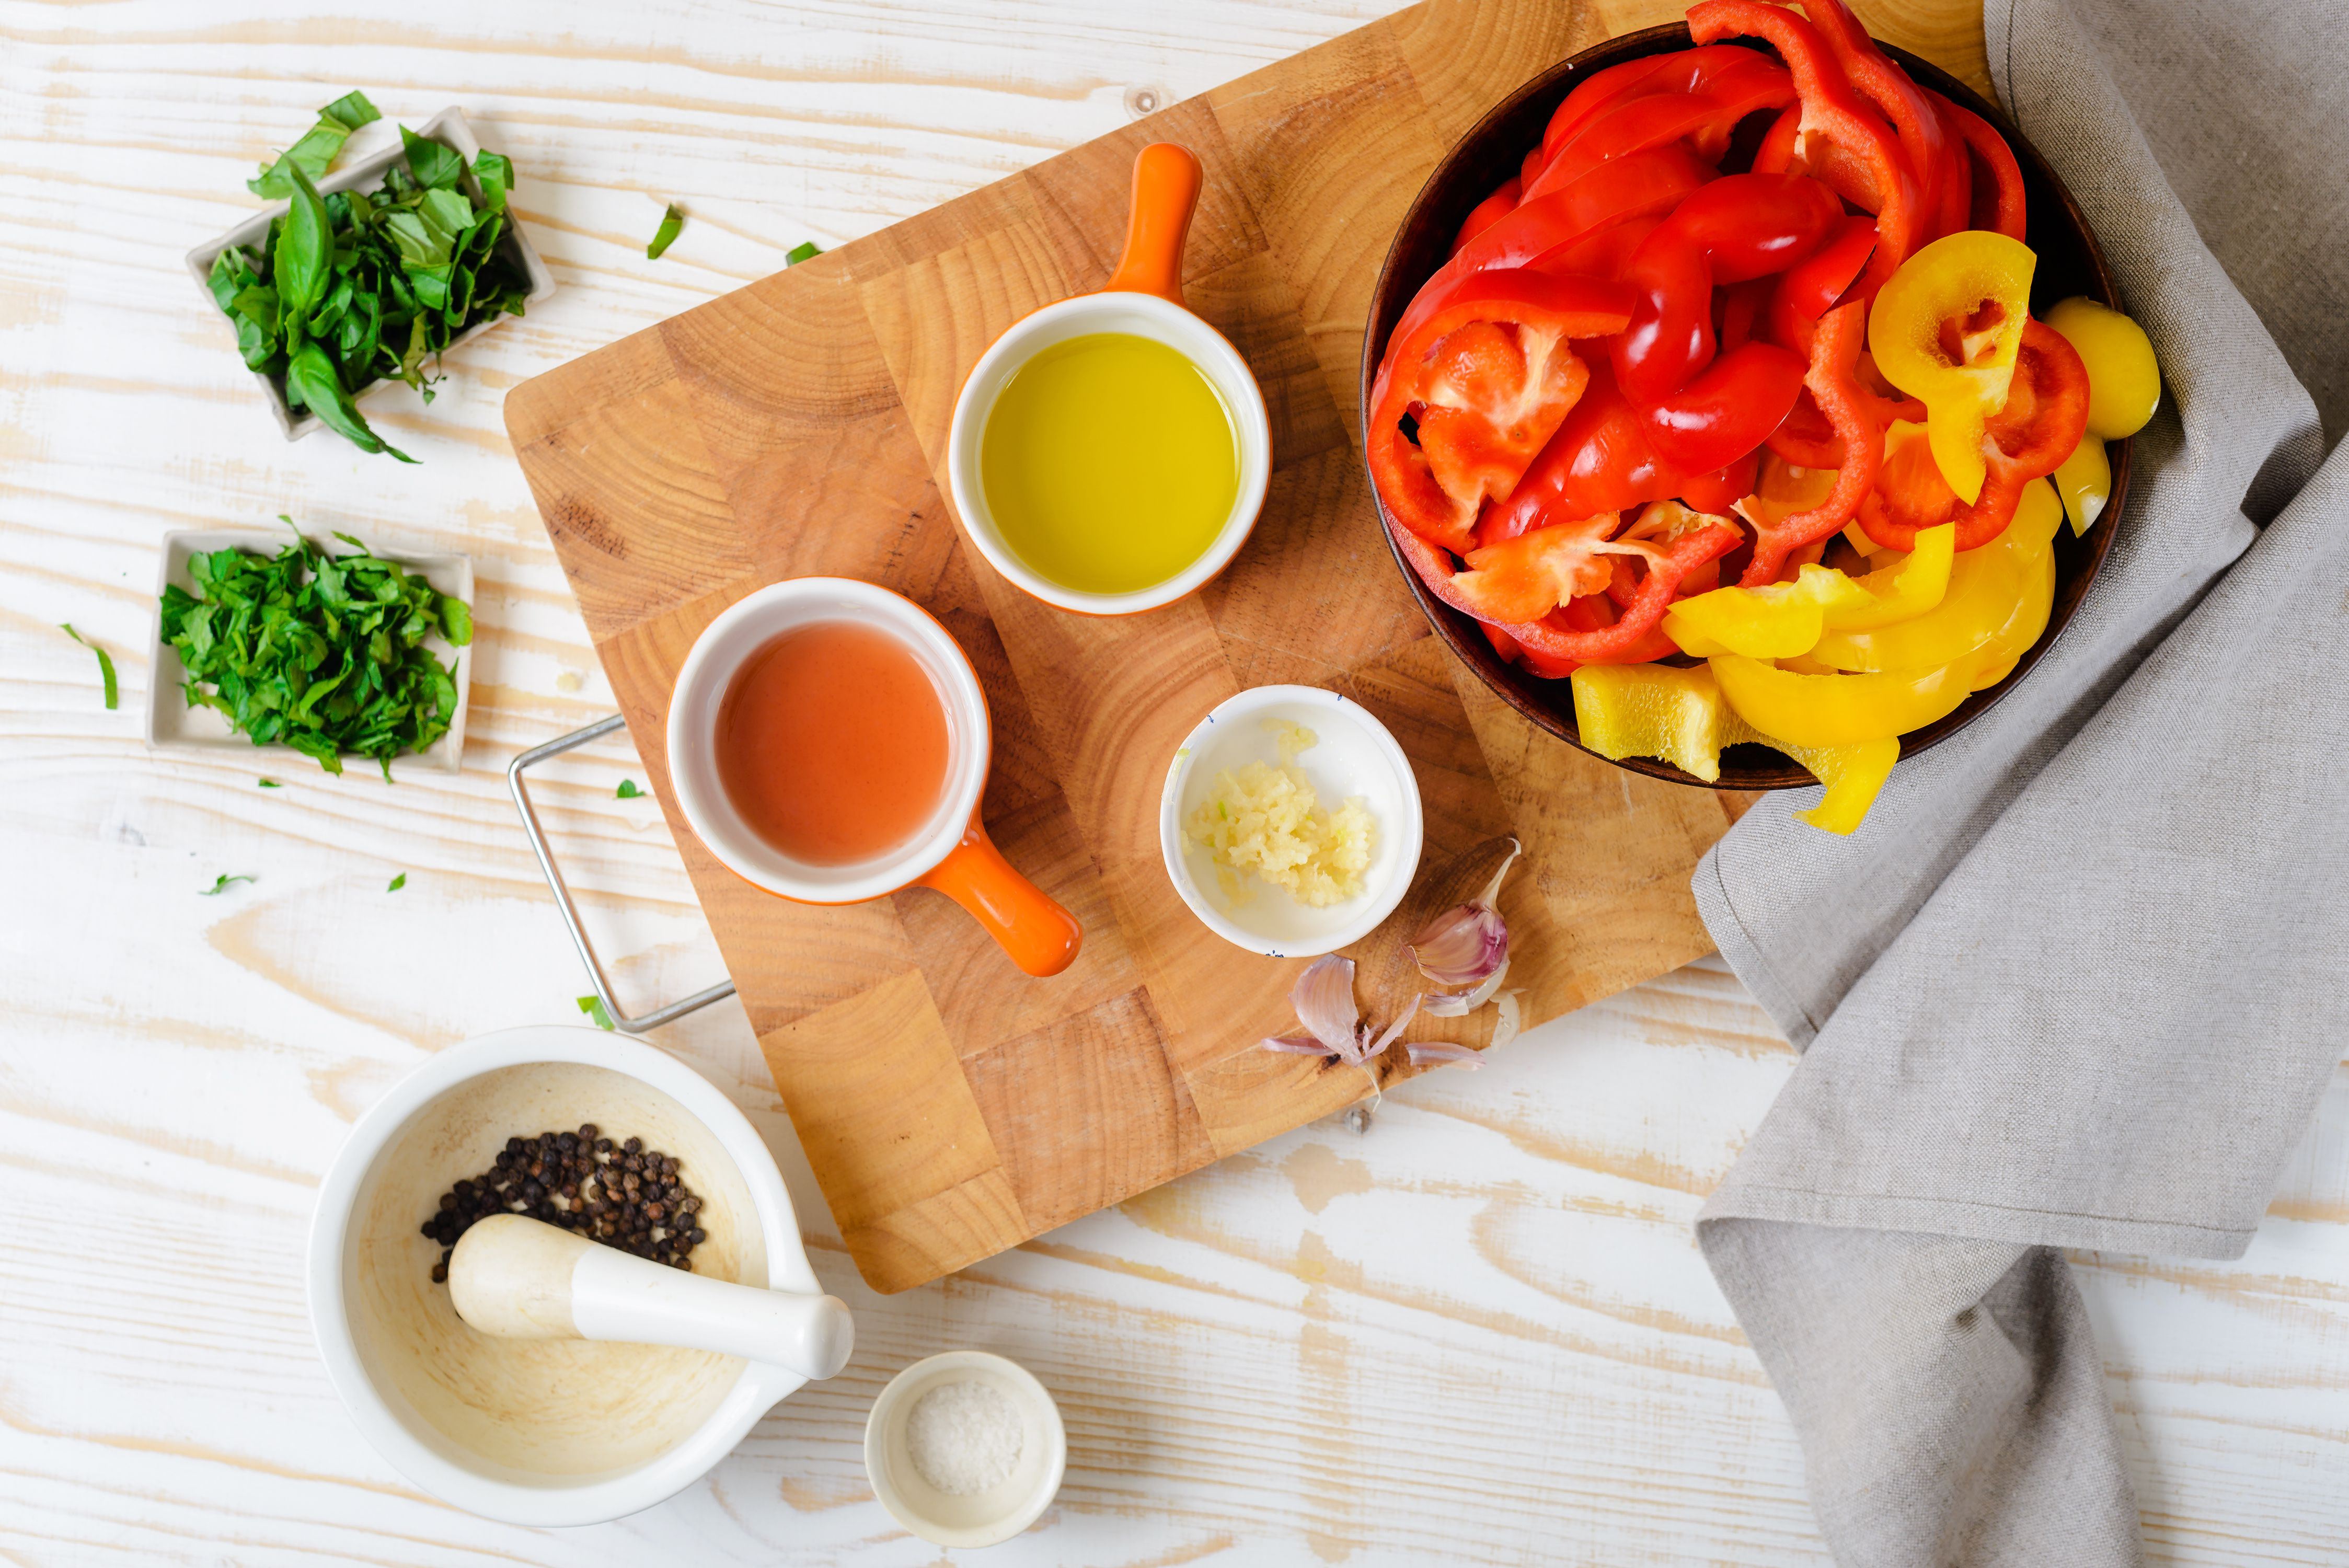 Ingredients for making garlic and herb sautéed bell pepper strips